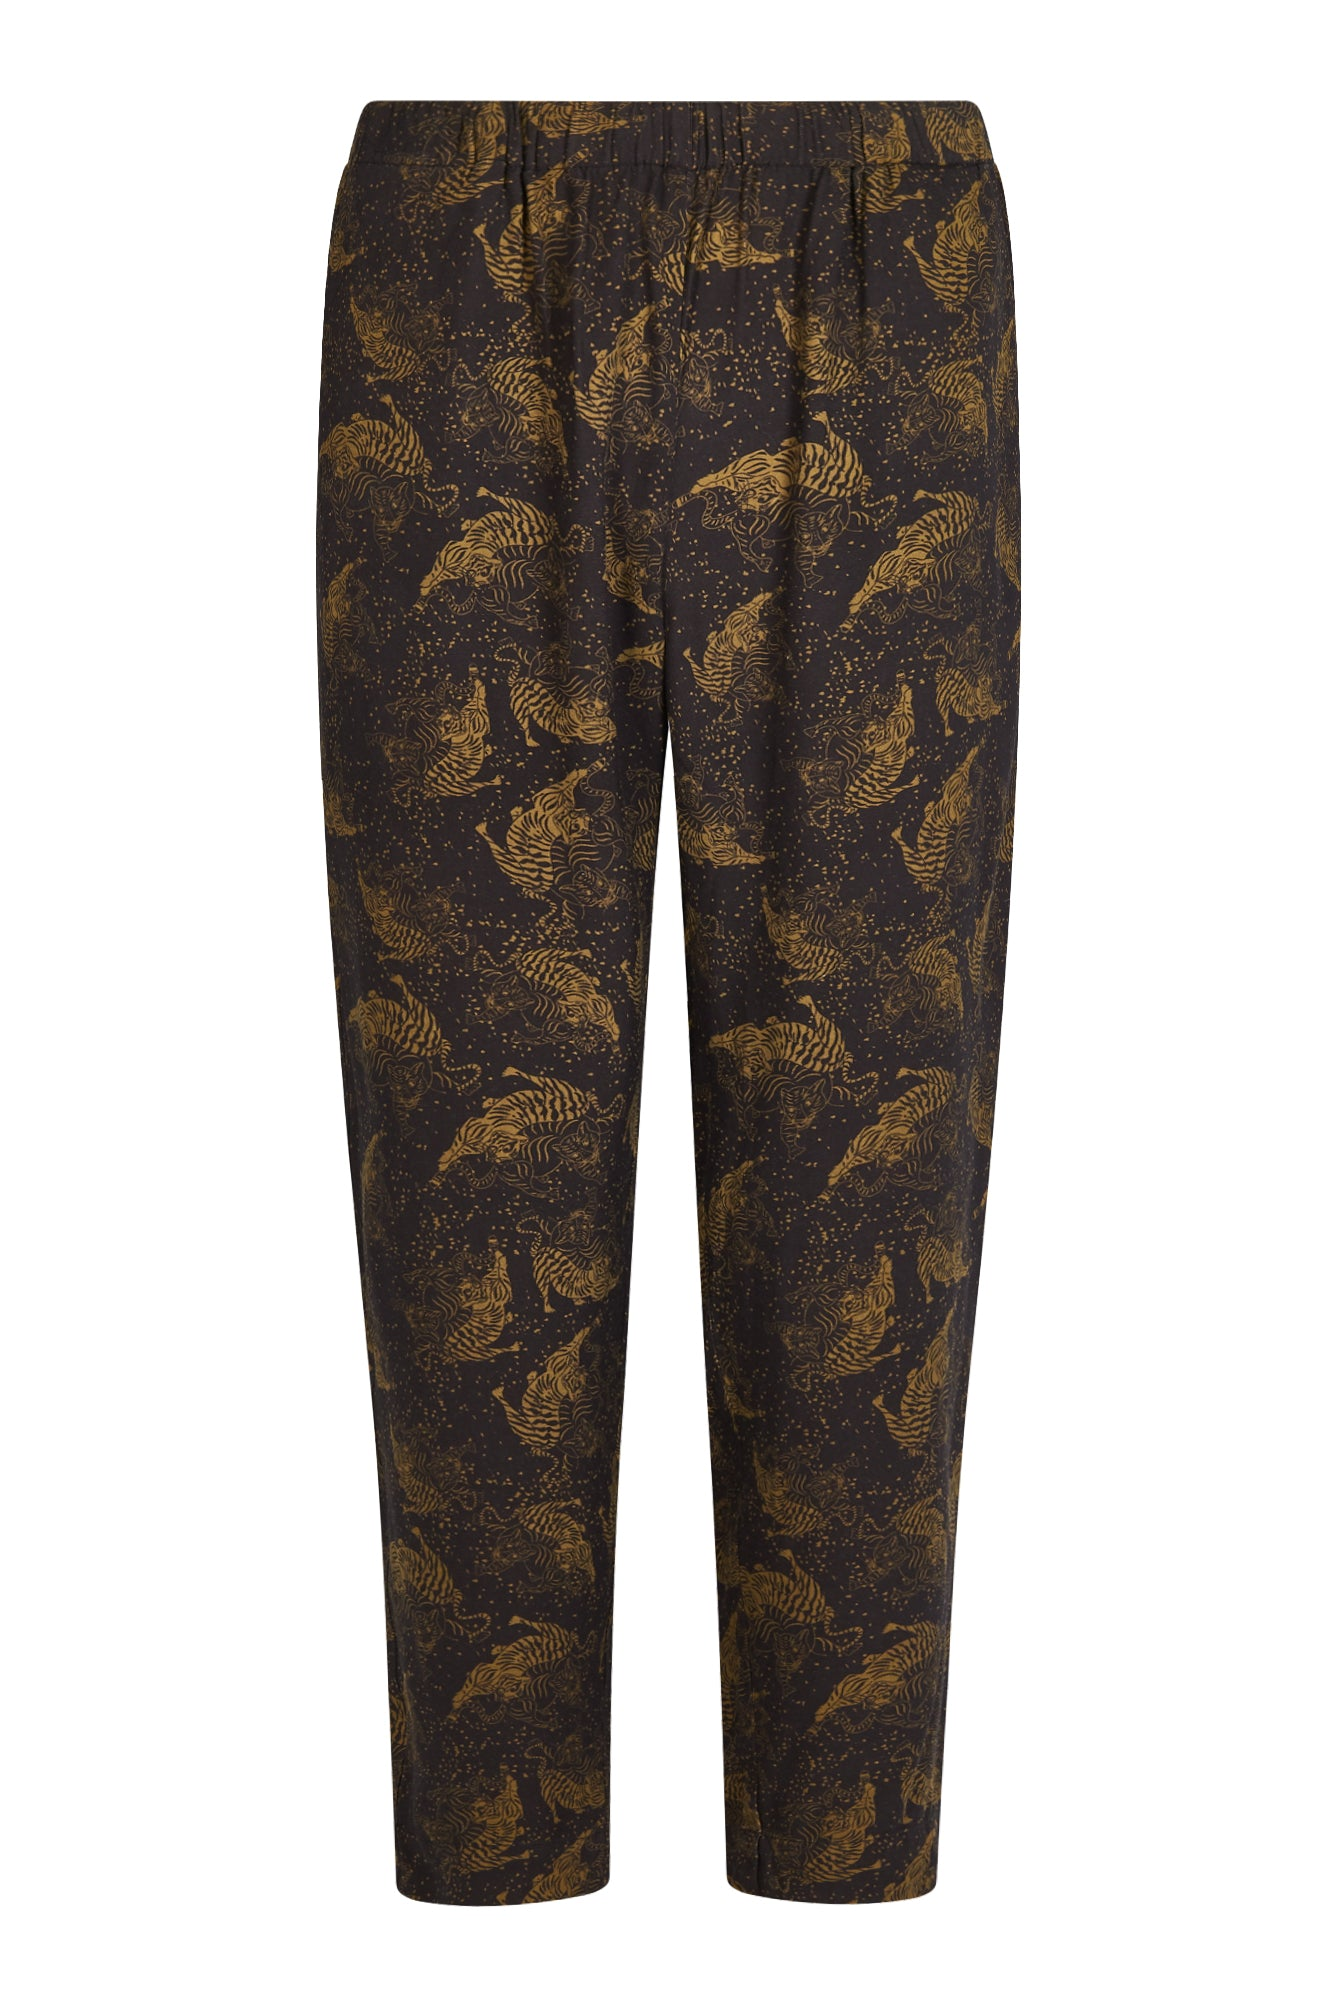 HIDDEN TIGER Rayon Rama Trousers Olive/Black